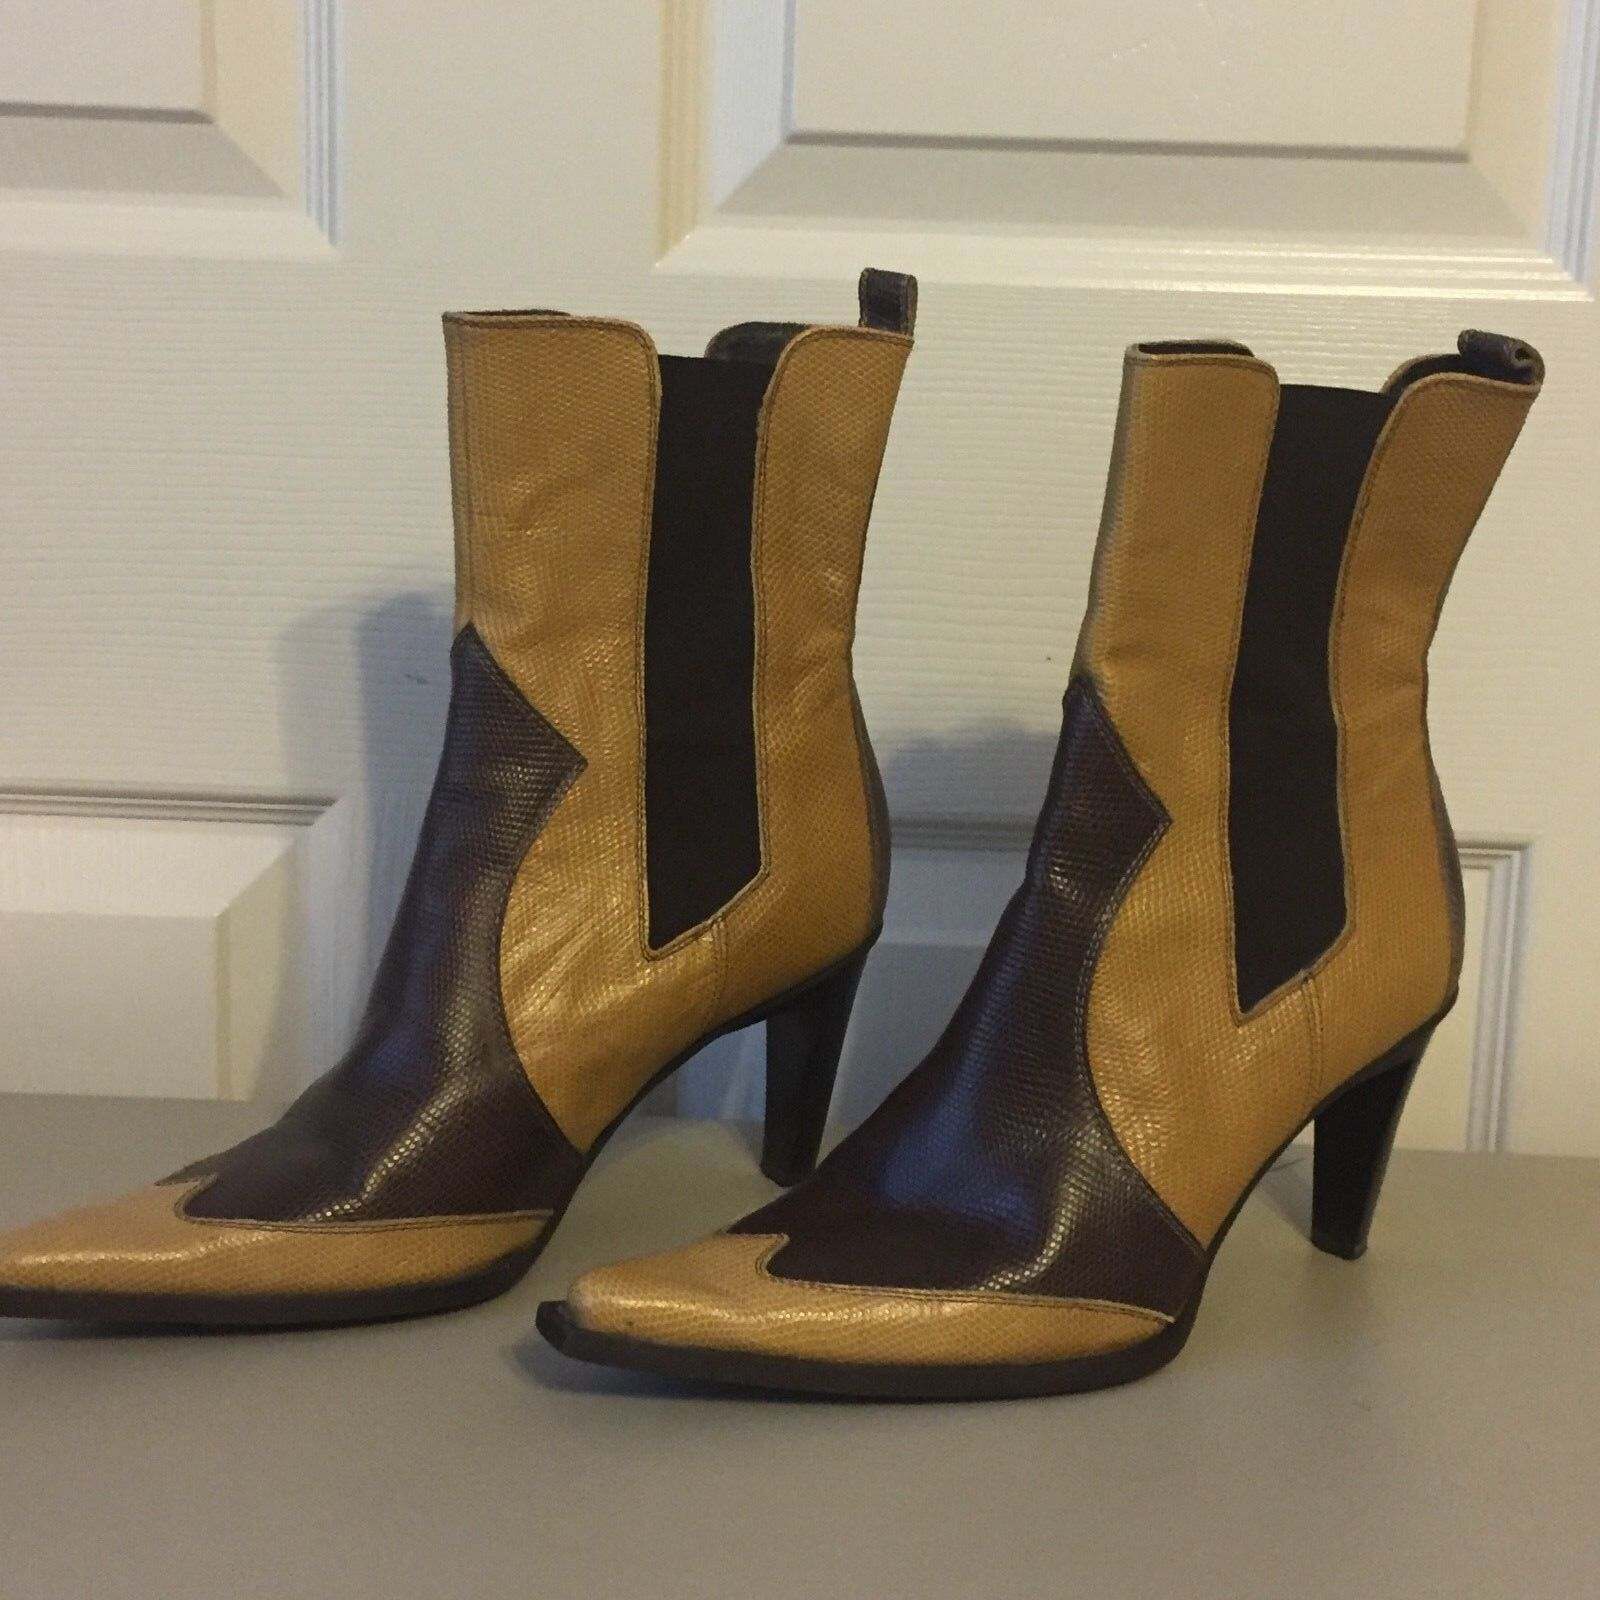 BEBE Two-Tone Bootie Ankle Boot, Sz 8 ( 175 new)